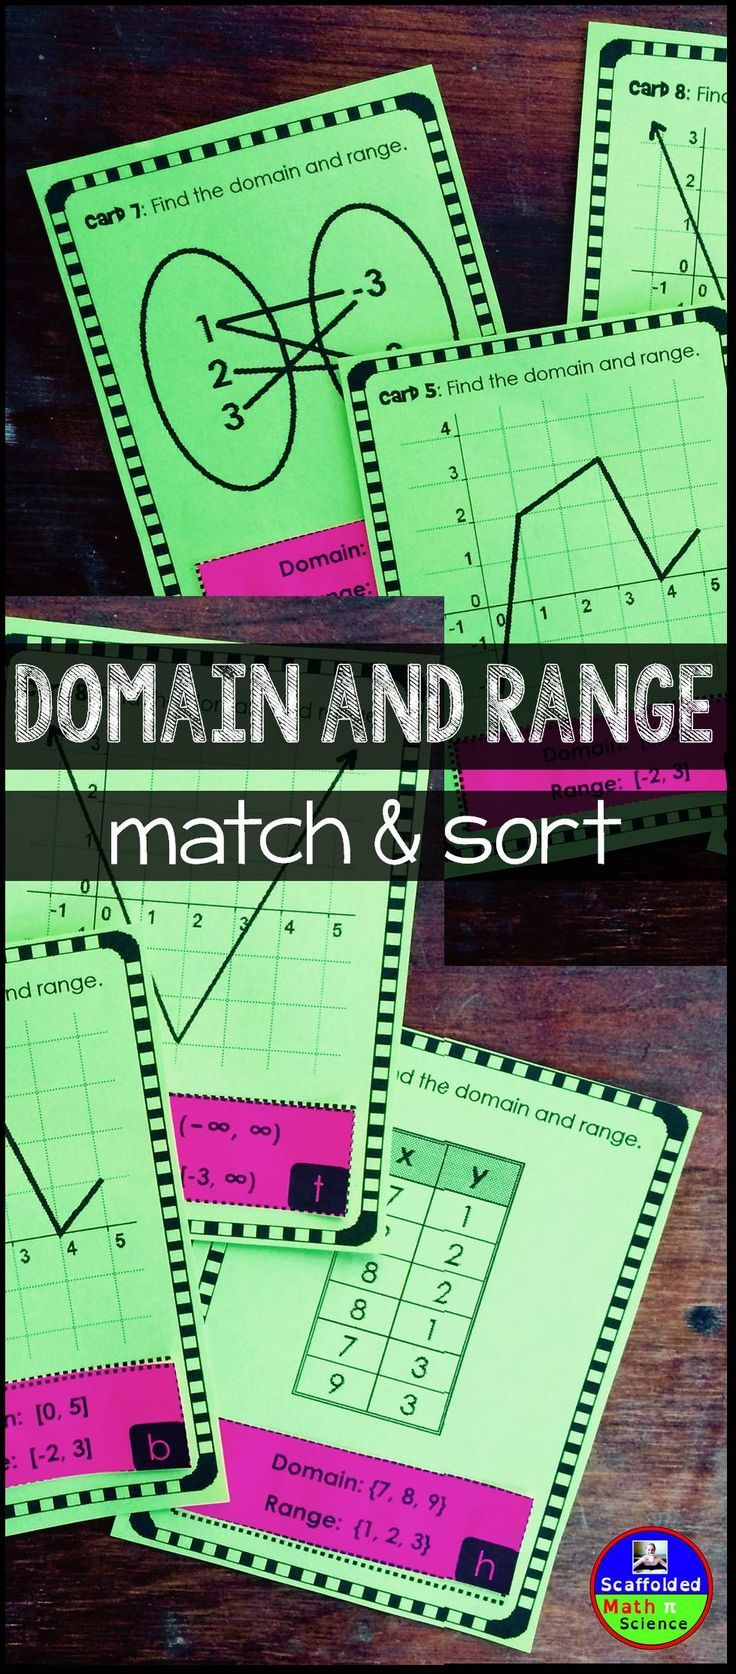 In this fun domain and range algebra activity, students match 20 cards of graphs, scatter plots, sets of coordinates, mappings and tables to cutouts of each relation's correct domain and range. They then sort their completed cards into 2 piles, whether they are a function or not a function. I use this activity as an assessment for domain and range.